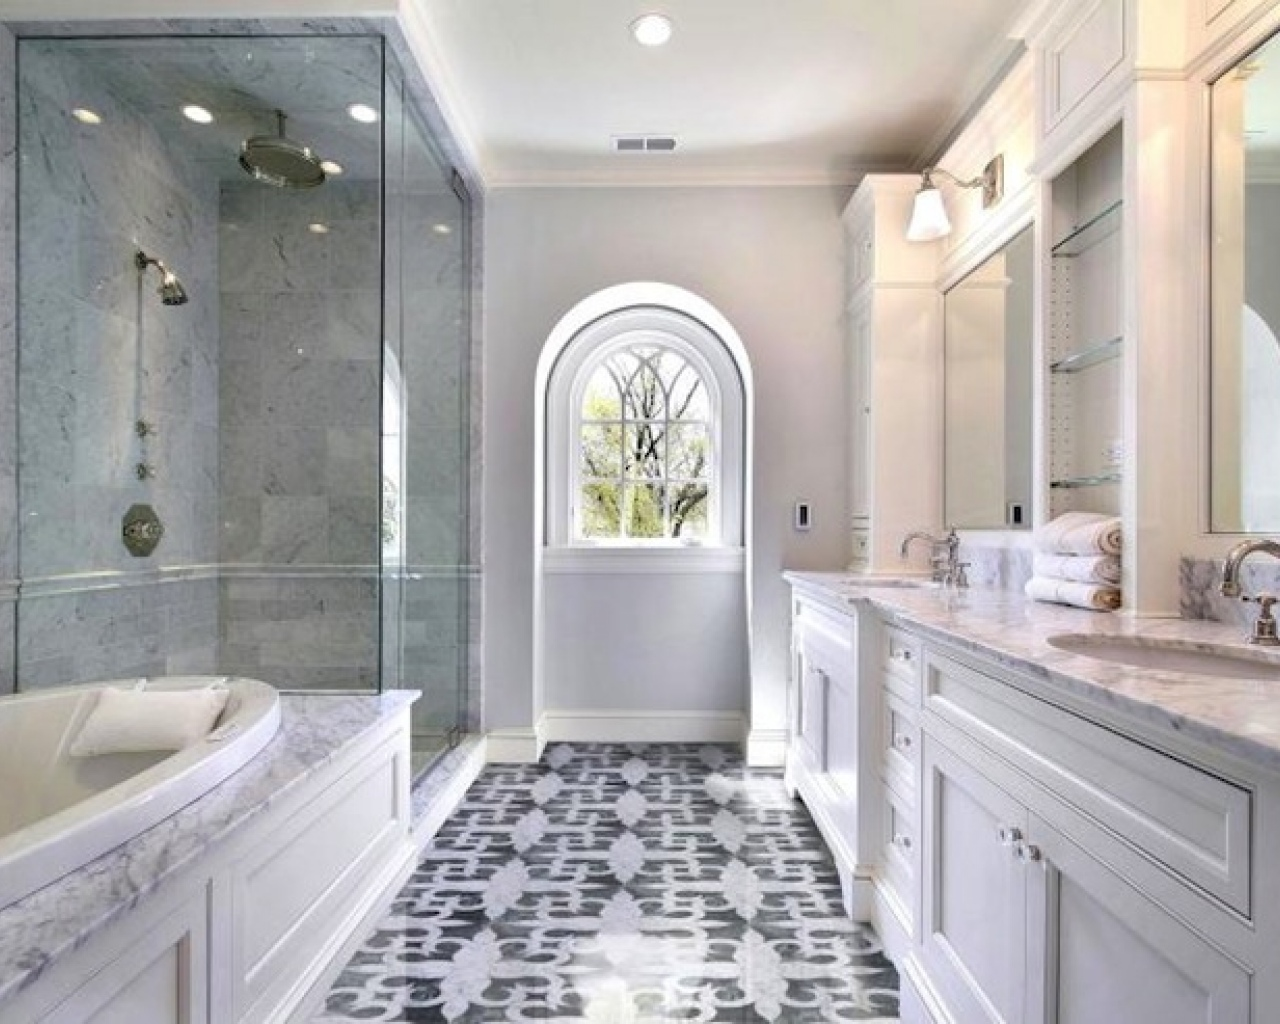 25 amazing italian bathroom tile designs ideas and pictures Bathroom tile decorating ideas